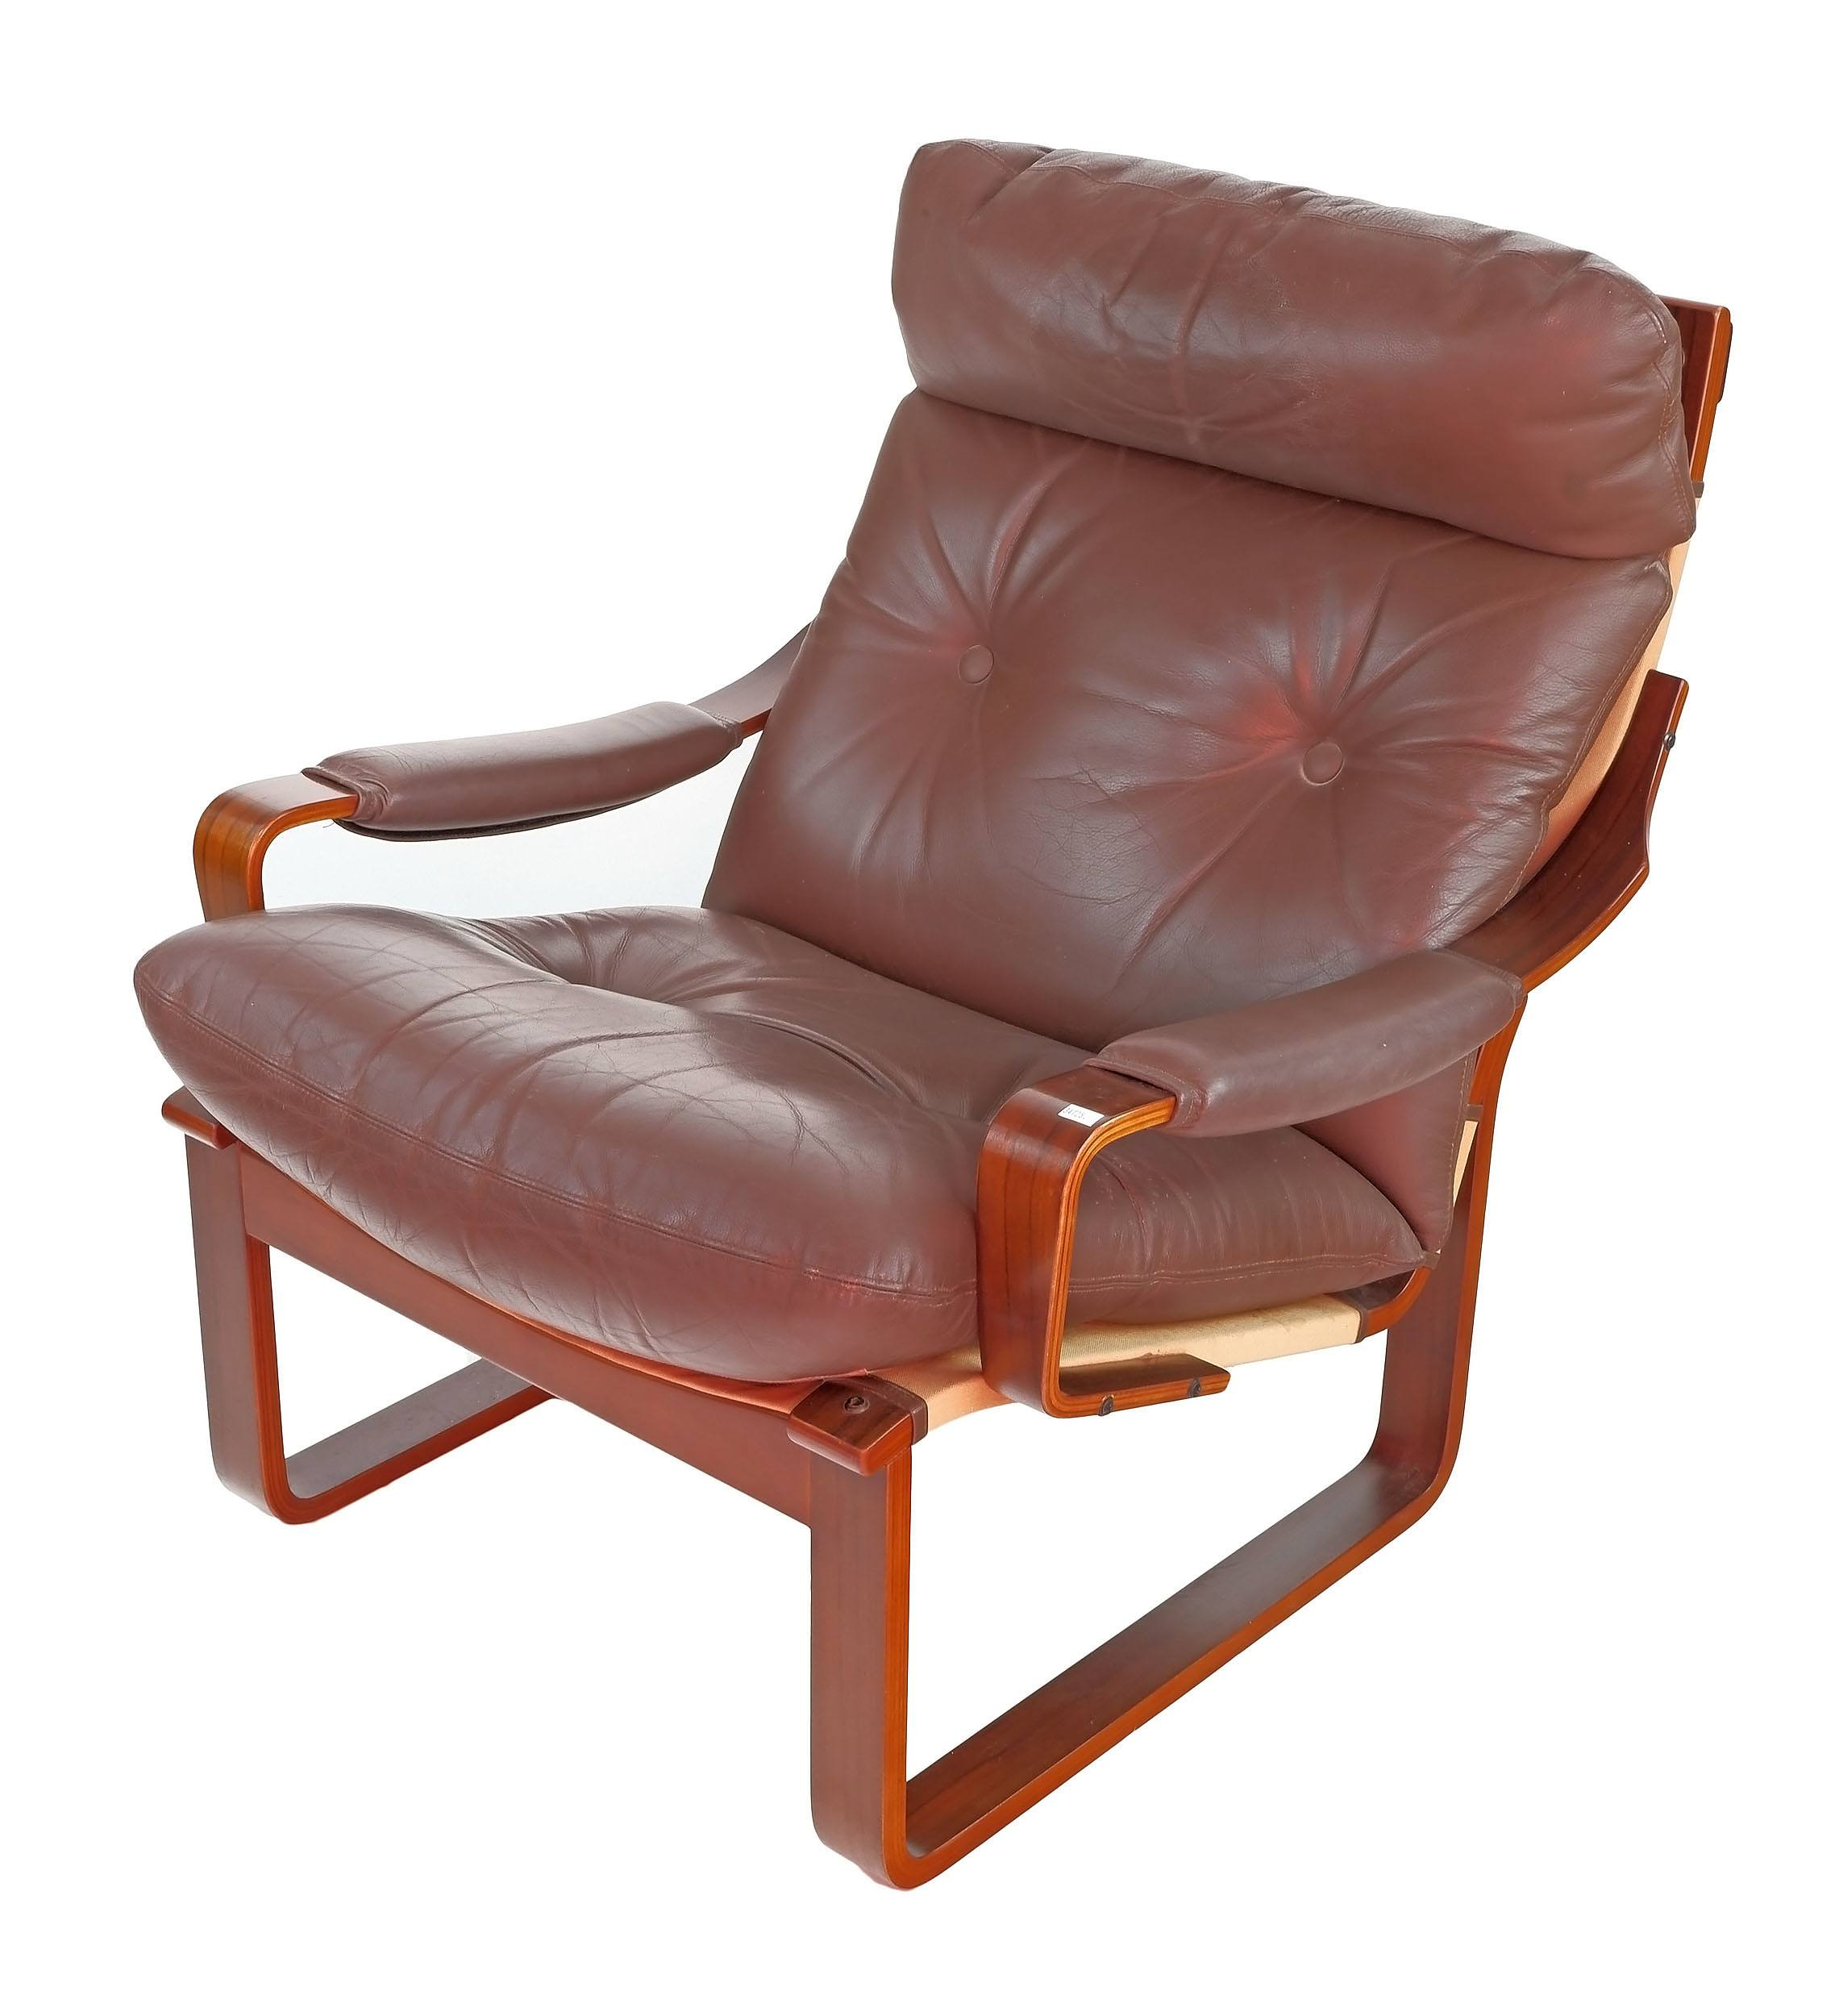 'Tessa T8 Armchair, Designed by Fred Lowen'